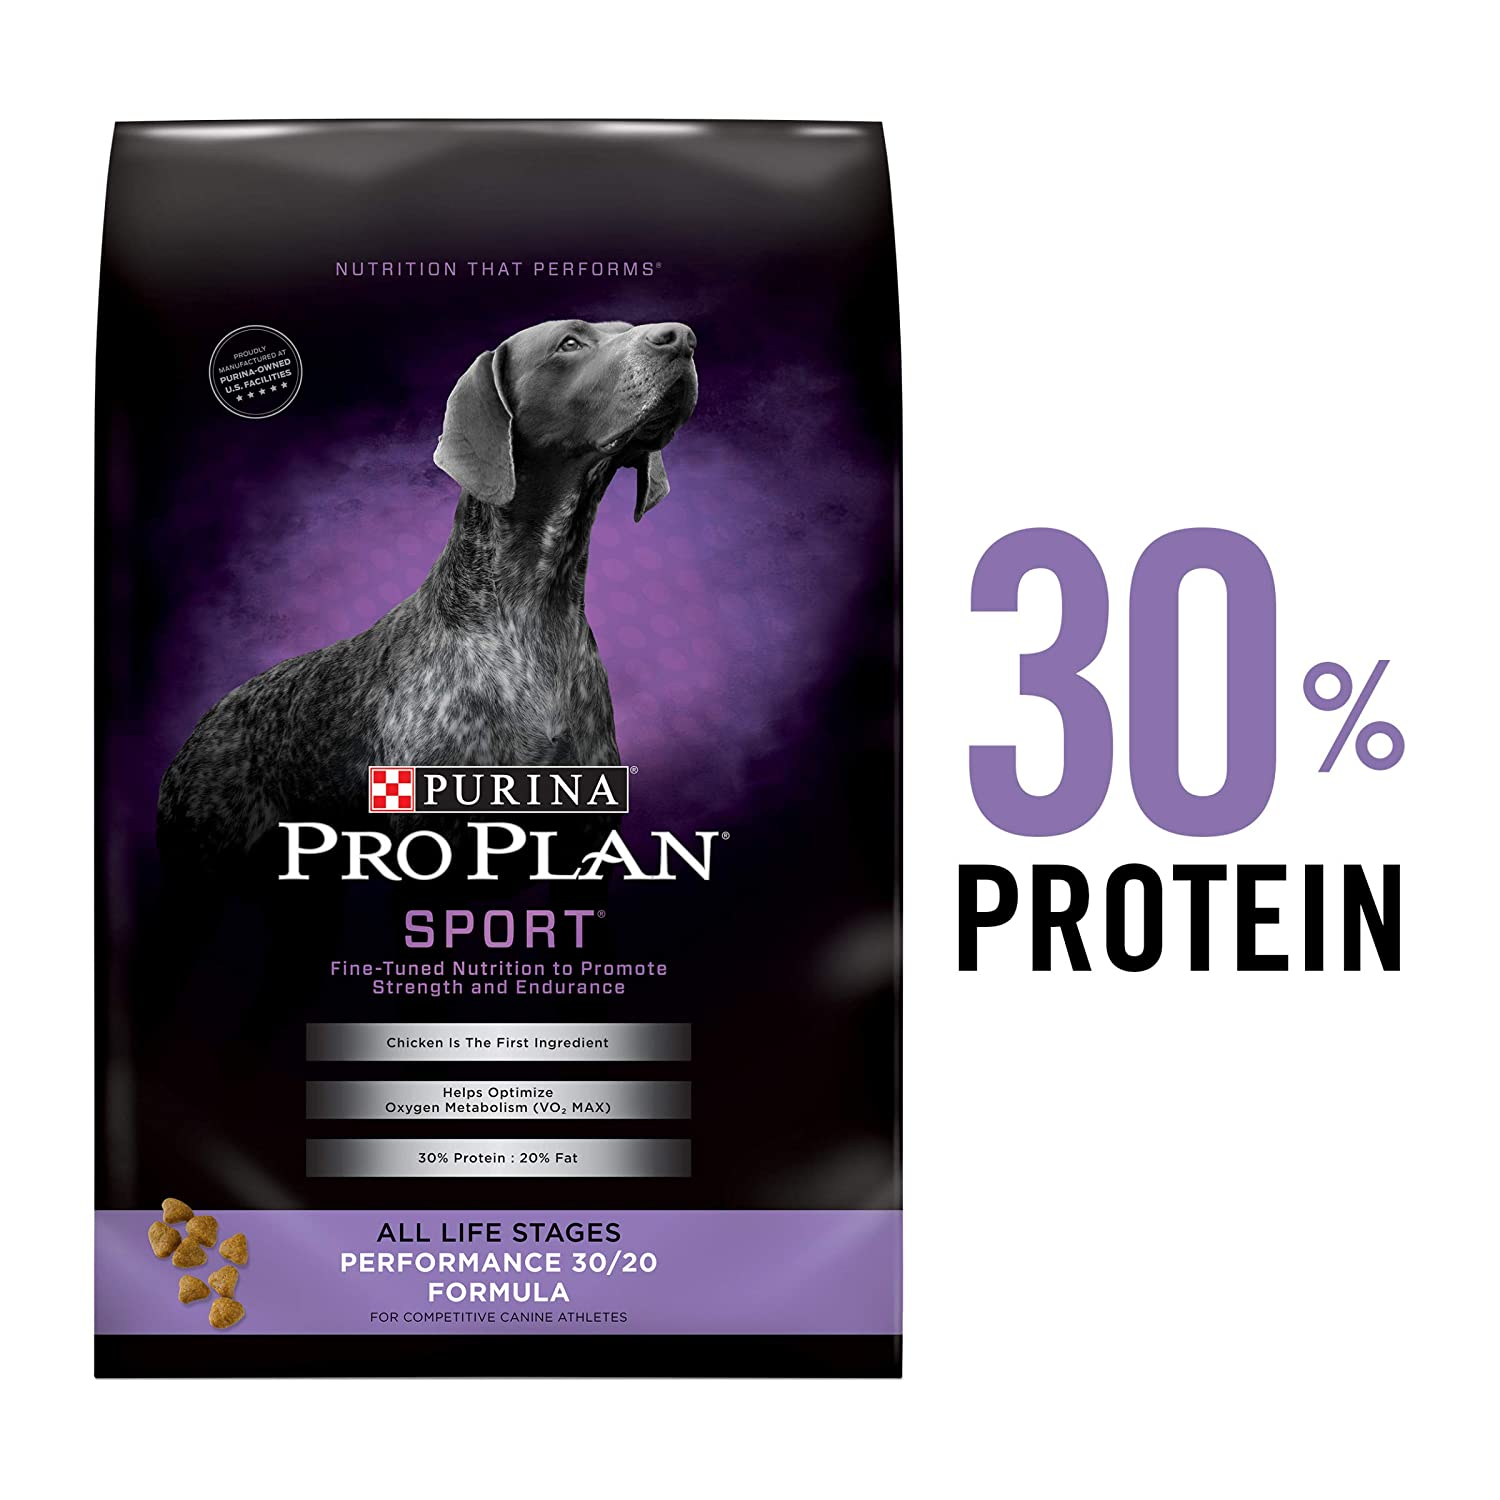 3. Purina Pro Plan Sport All Life Stages Performance 30/20 Formula